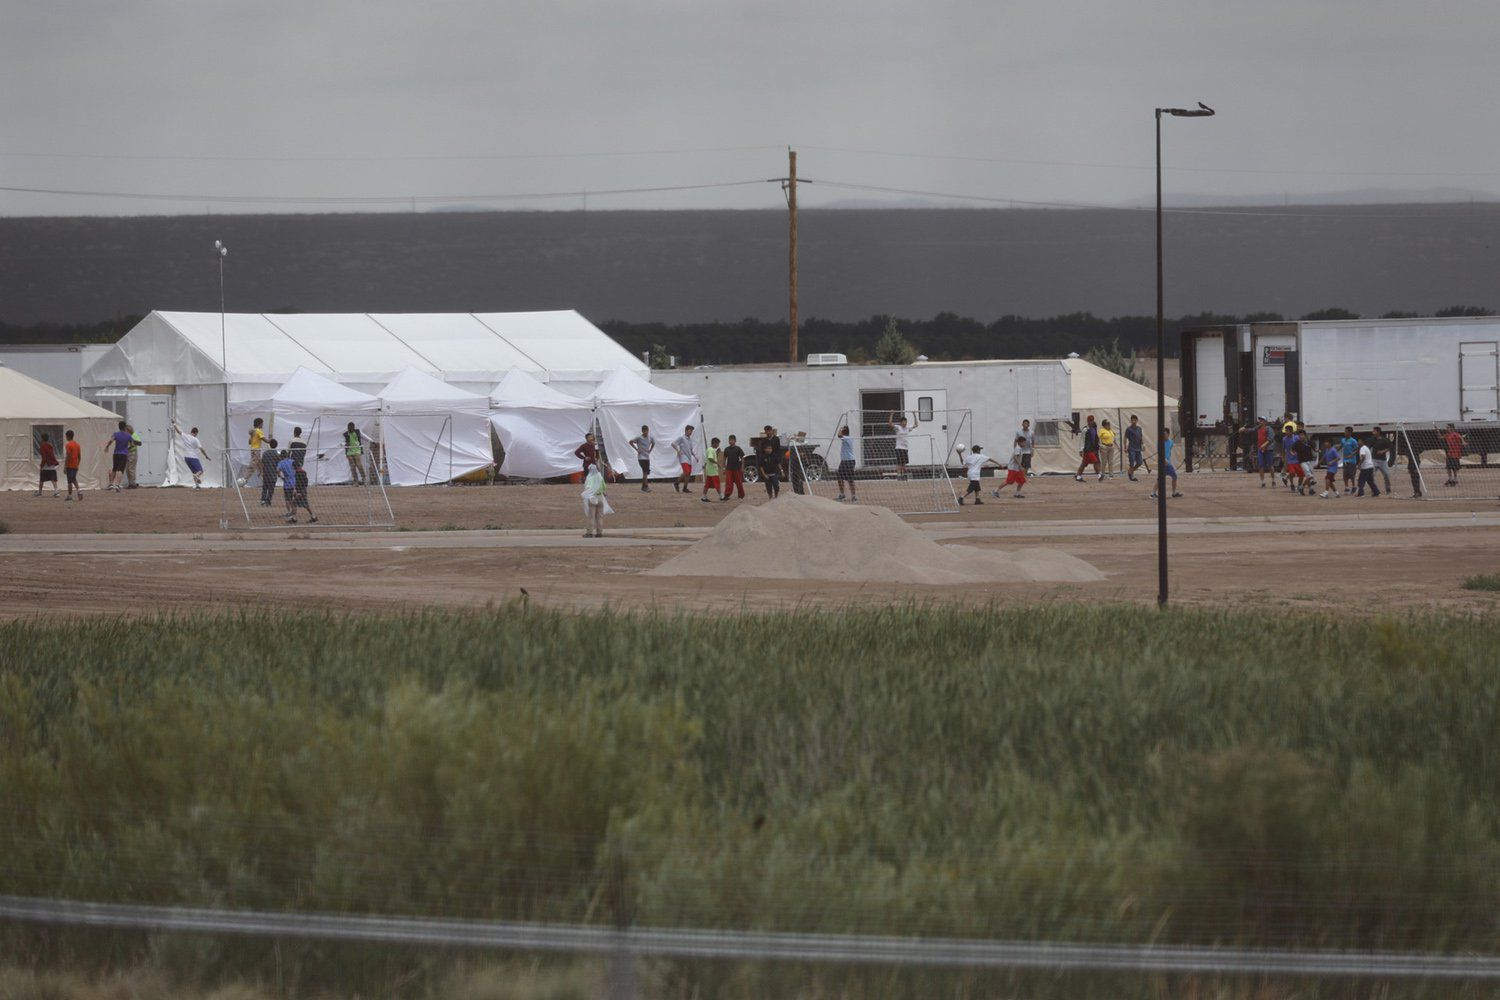 The tent city at Tornillo Port of Entry near El Paso on June 16, 2018. The facility was created to house immigrant children who were separated from their parents when they crossed the border.